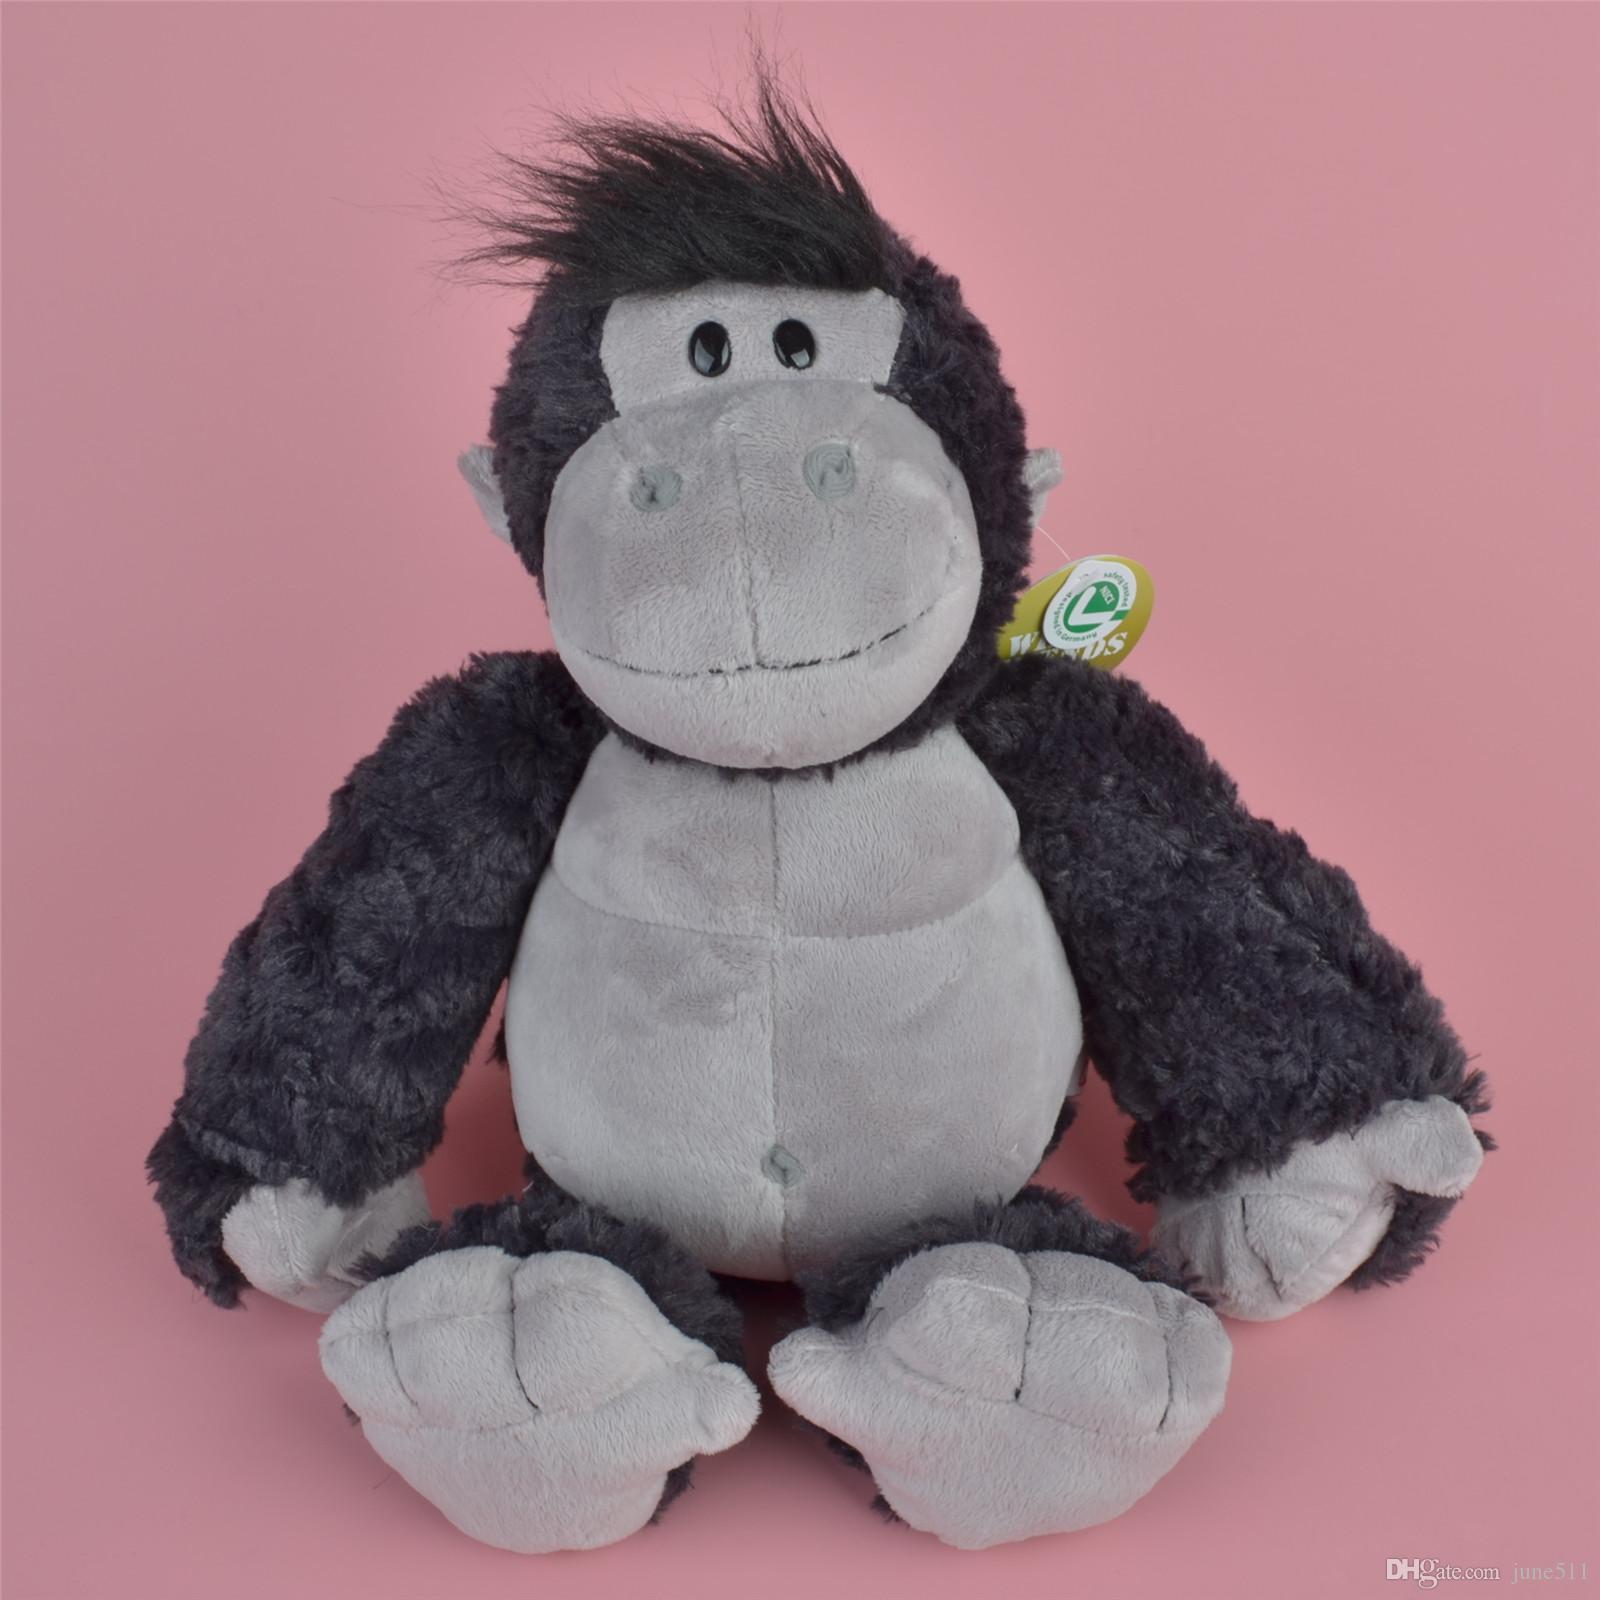 35 45cm Black Orangutan Brand New Soft Stuffed Wild Aniamls Plush